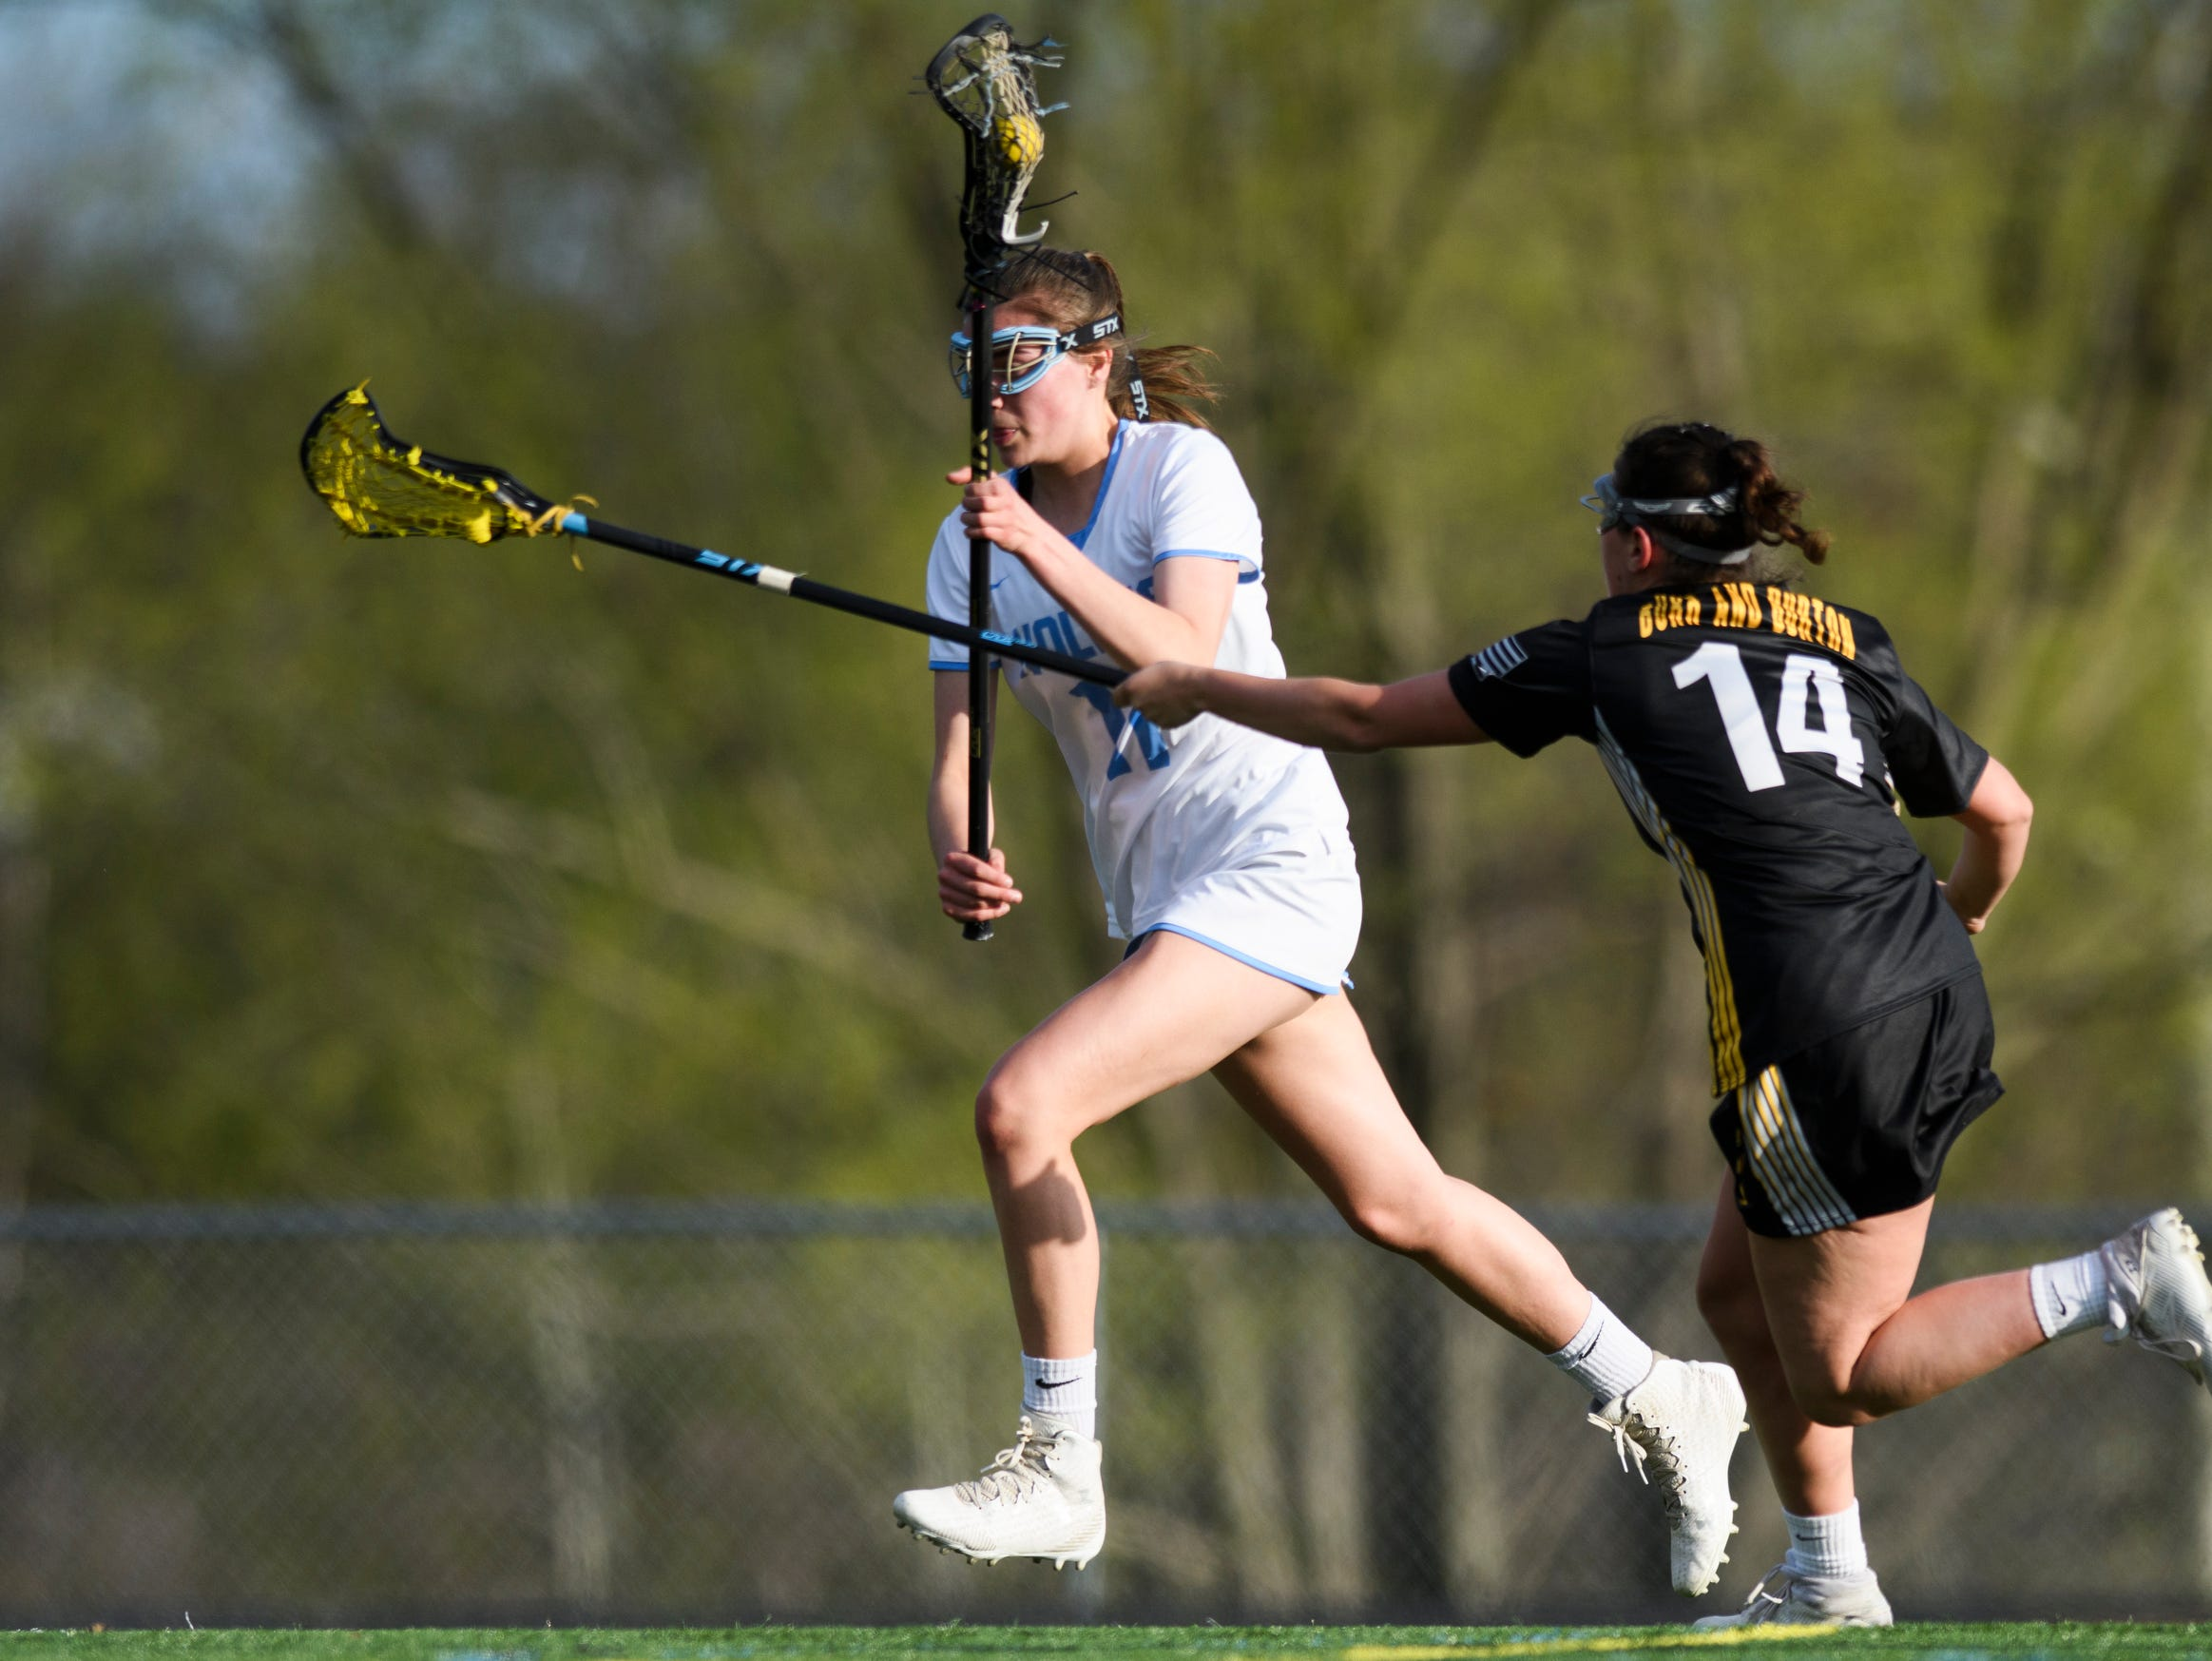 South Burlington's Christina March (11) runs down the field past Burr and Burton's Charleigh Carthy (14) during the high school girls lacrosse game between Burr and Burton Bulldogs and the South Burlington Wolves at Munson Field on Monday afternoon May 6, 2019 in South Burlington, Vermont.